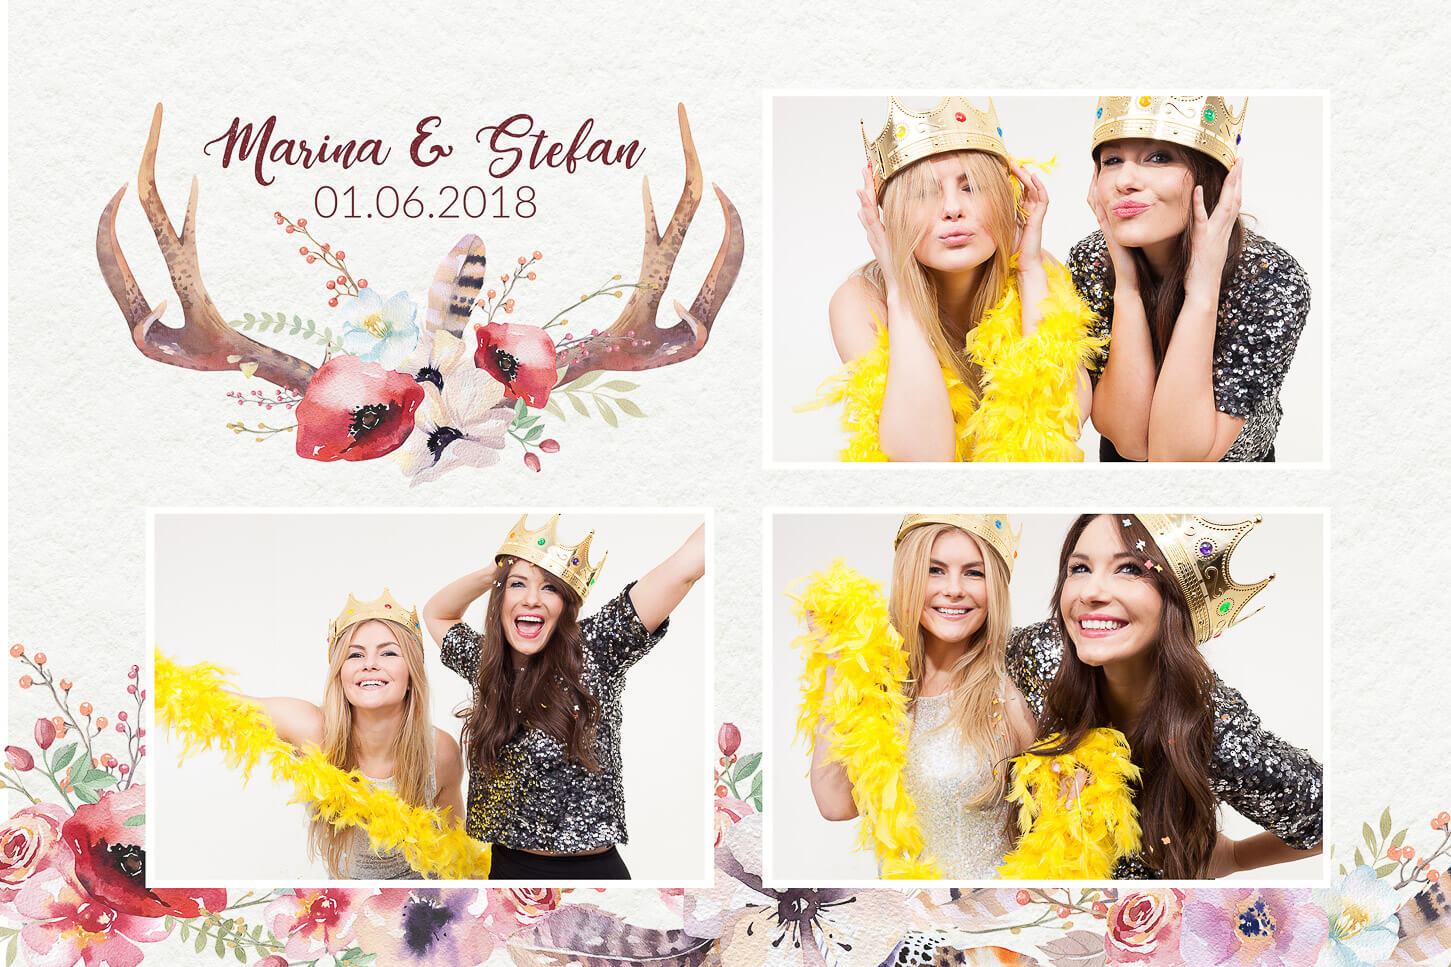 Fotobox photobooth hirsch boho videobooth layout gäste